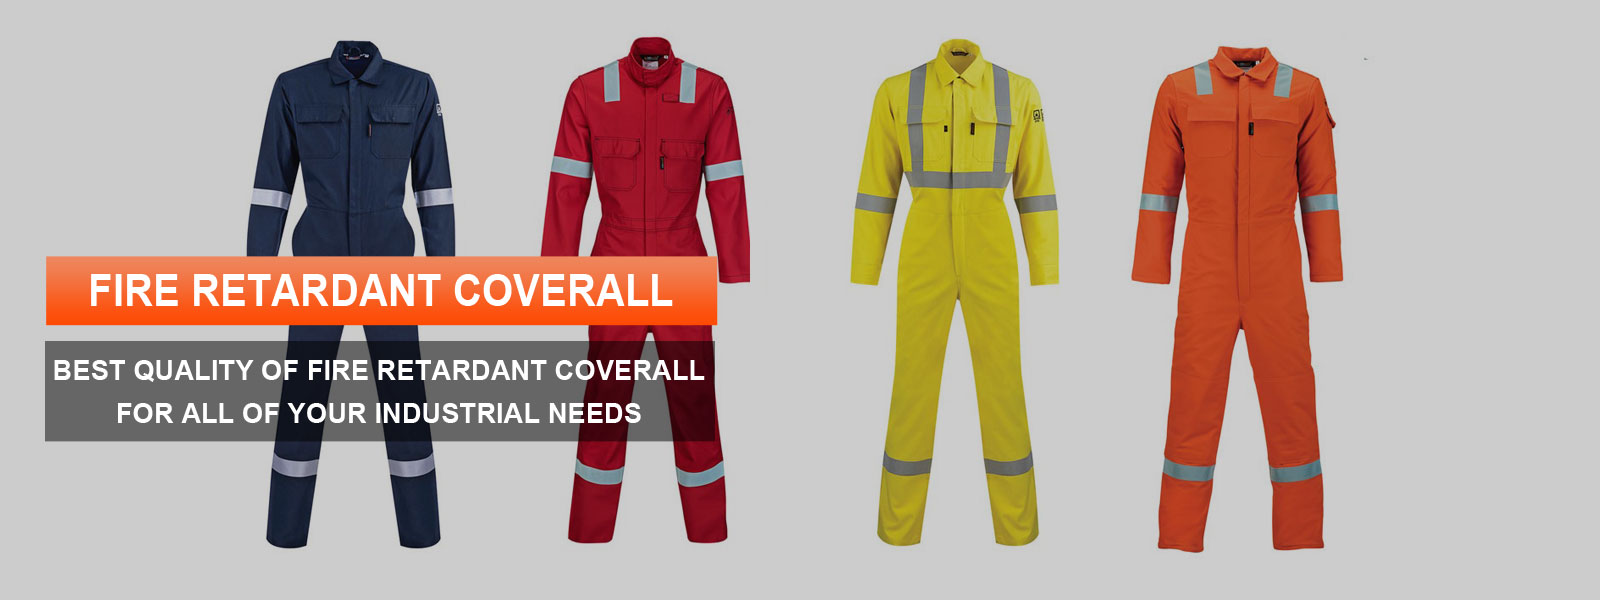 Fire Retardant Coverall Manufacturers in Bihar